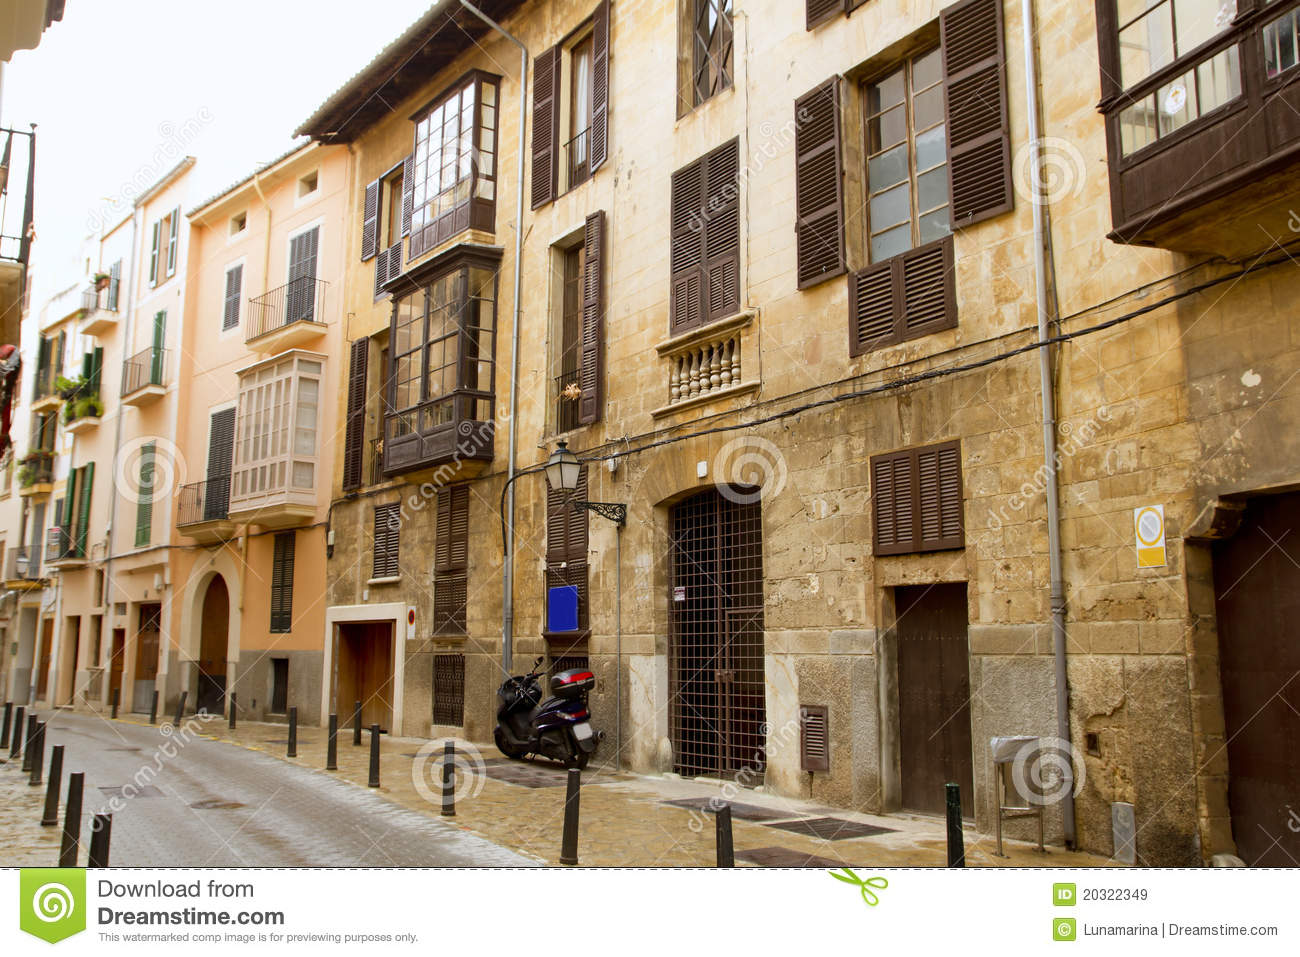 Royalty Free Stock Images Palma De Mallorca Old City Barrio Calatrava Street Image20322349 together with Stock Image Flower Lined Street Traditional Austrian Village Hallstatt Image30773821 also 327285097892249430 furthermore Liken Moss Texture Seamless 13167 further Wellington. on outdoor street boards